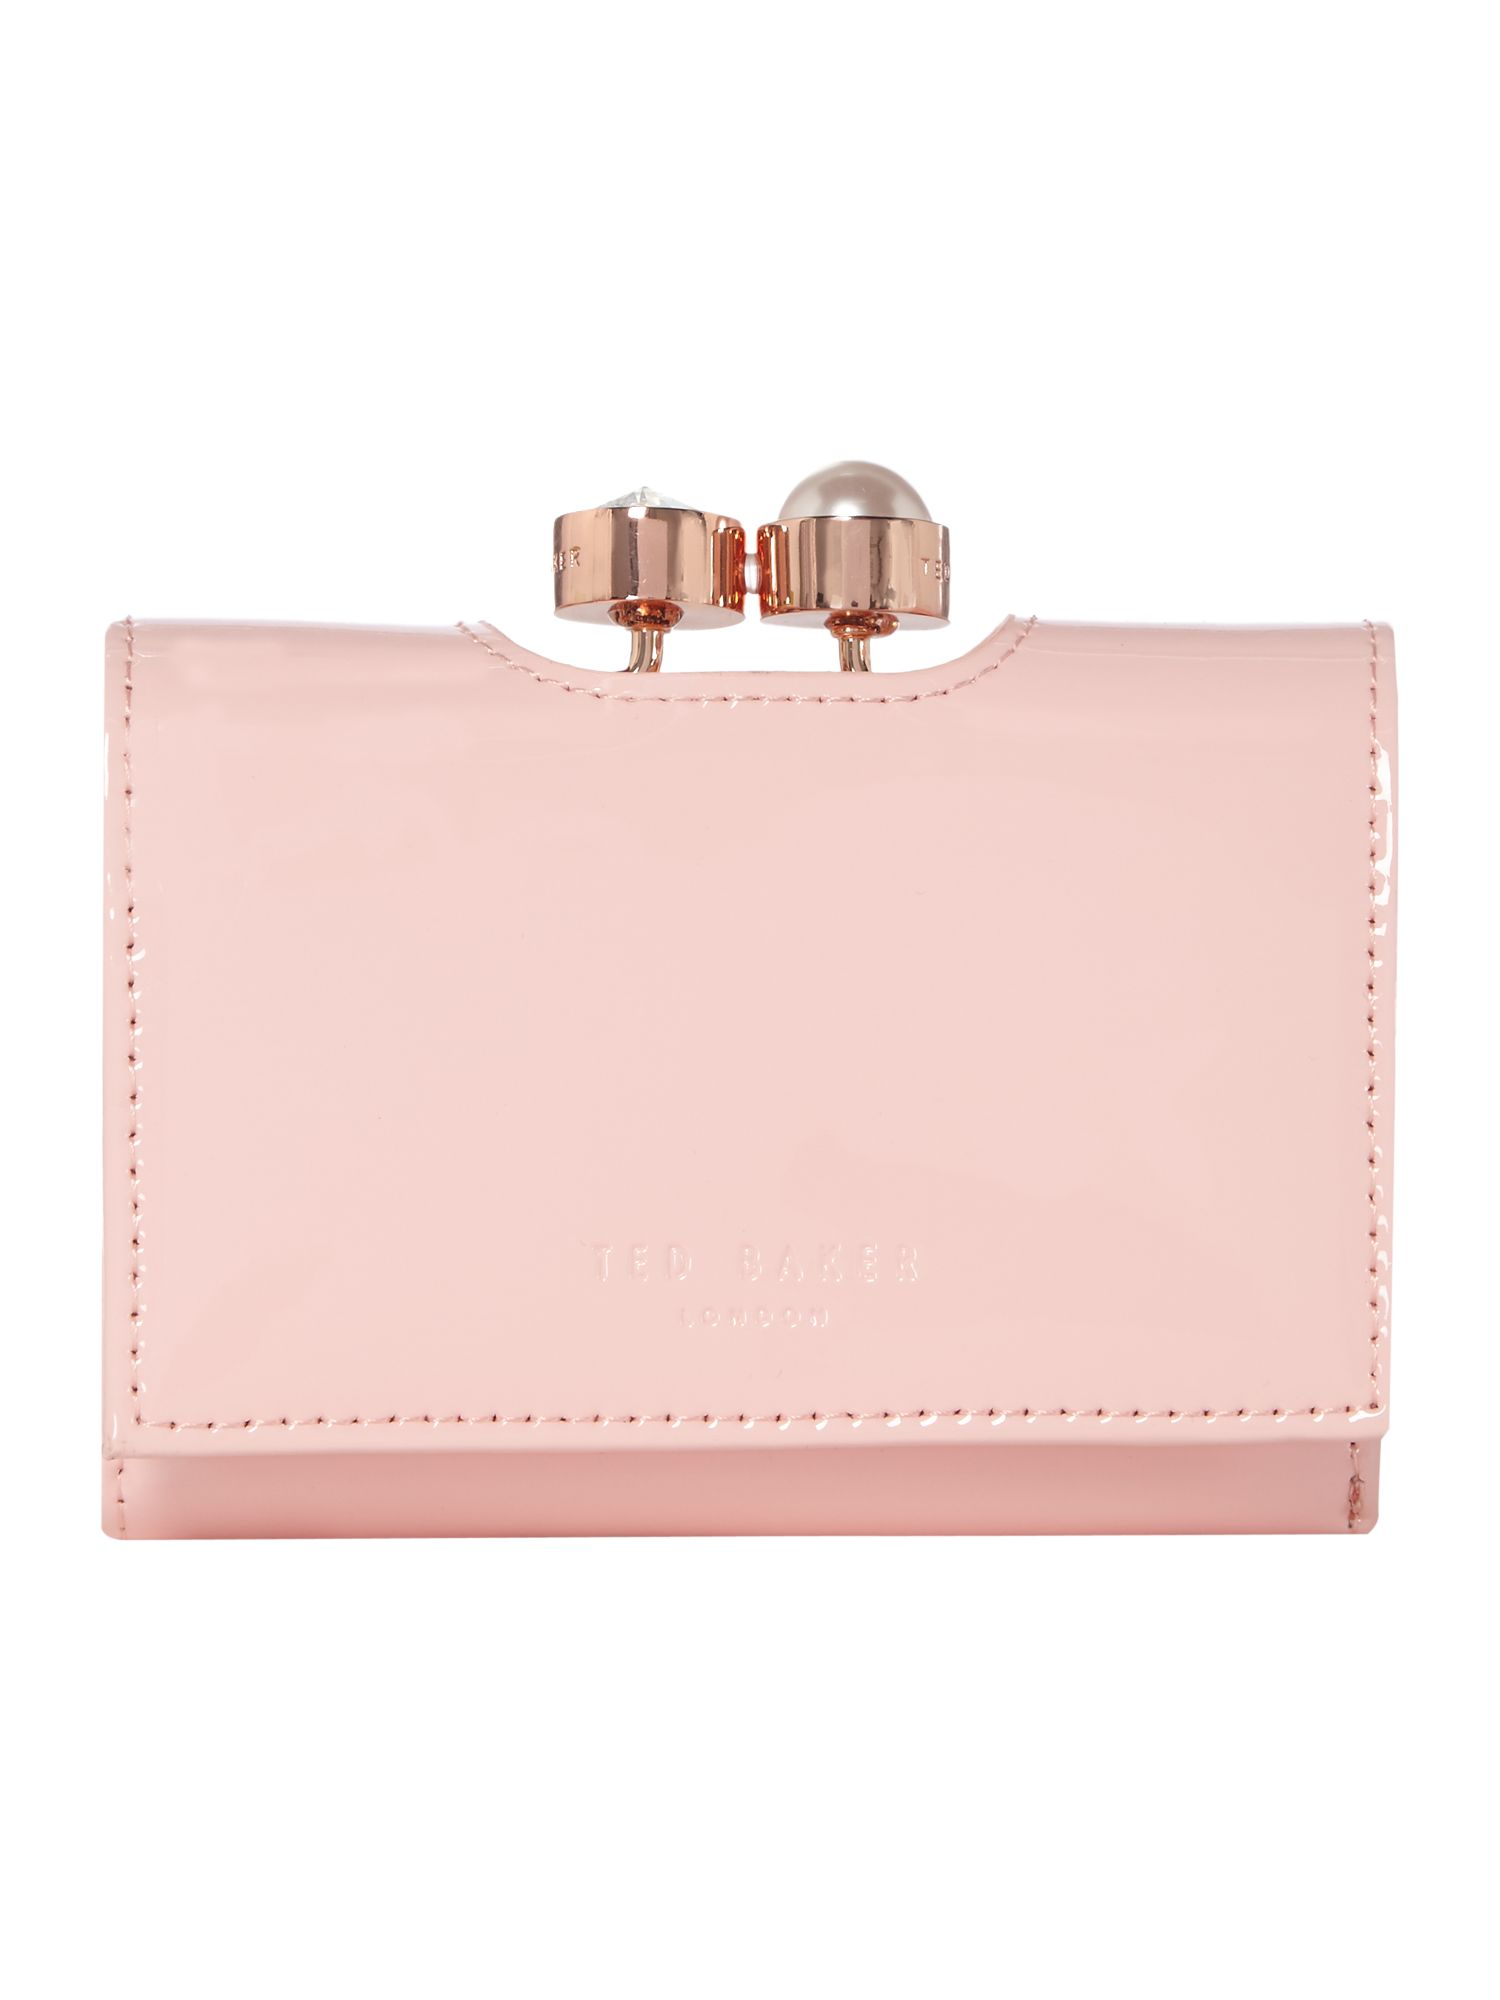 Gifts For Her Gift Ideas For Women Birthday Gifts